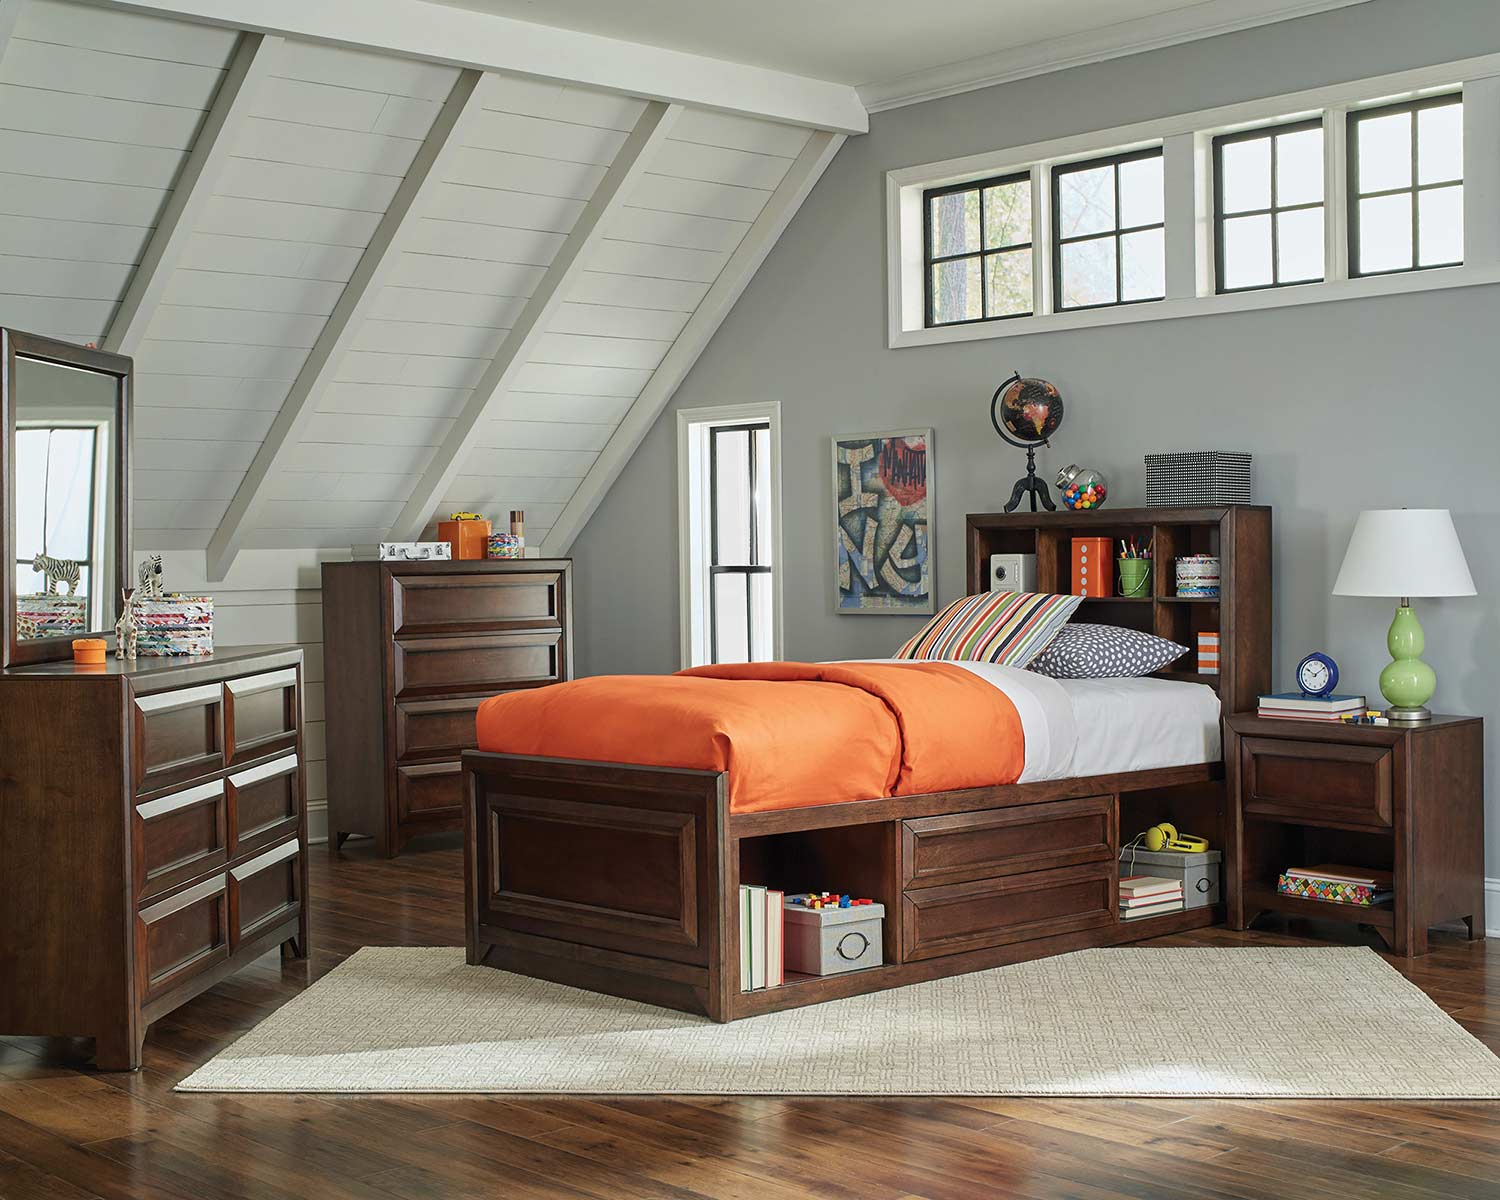 Coaster Greenough Twin Size Storage Bedroom Set - Maple Oak